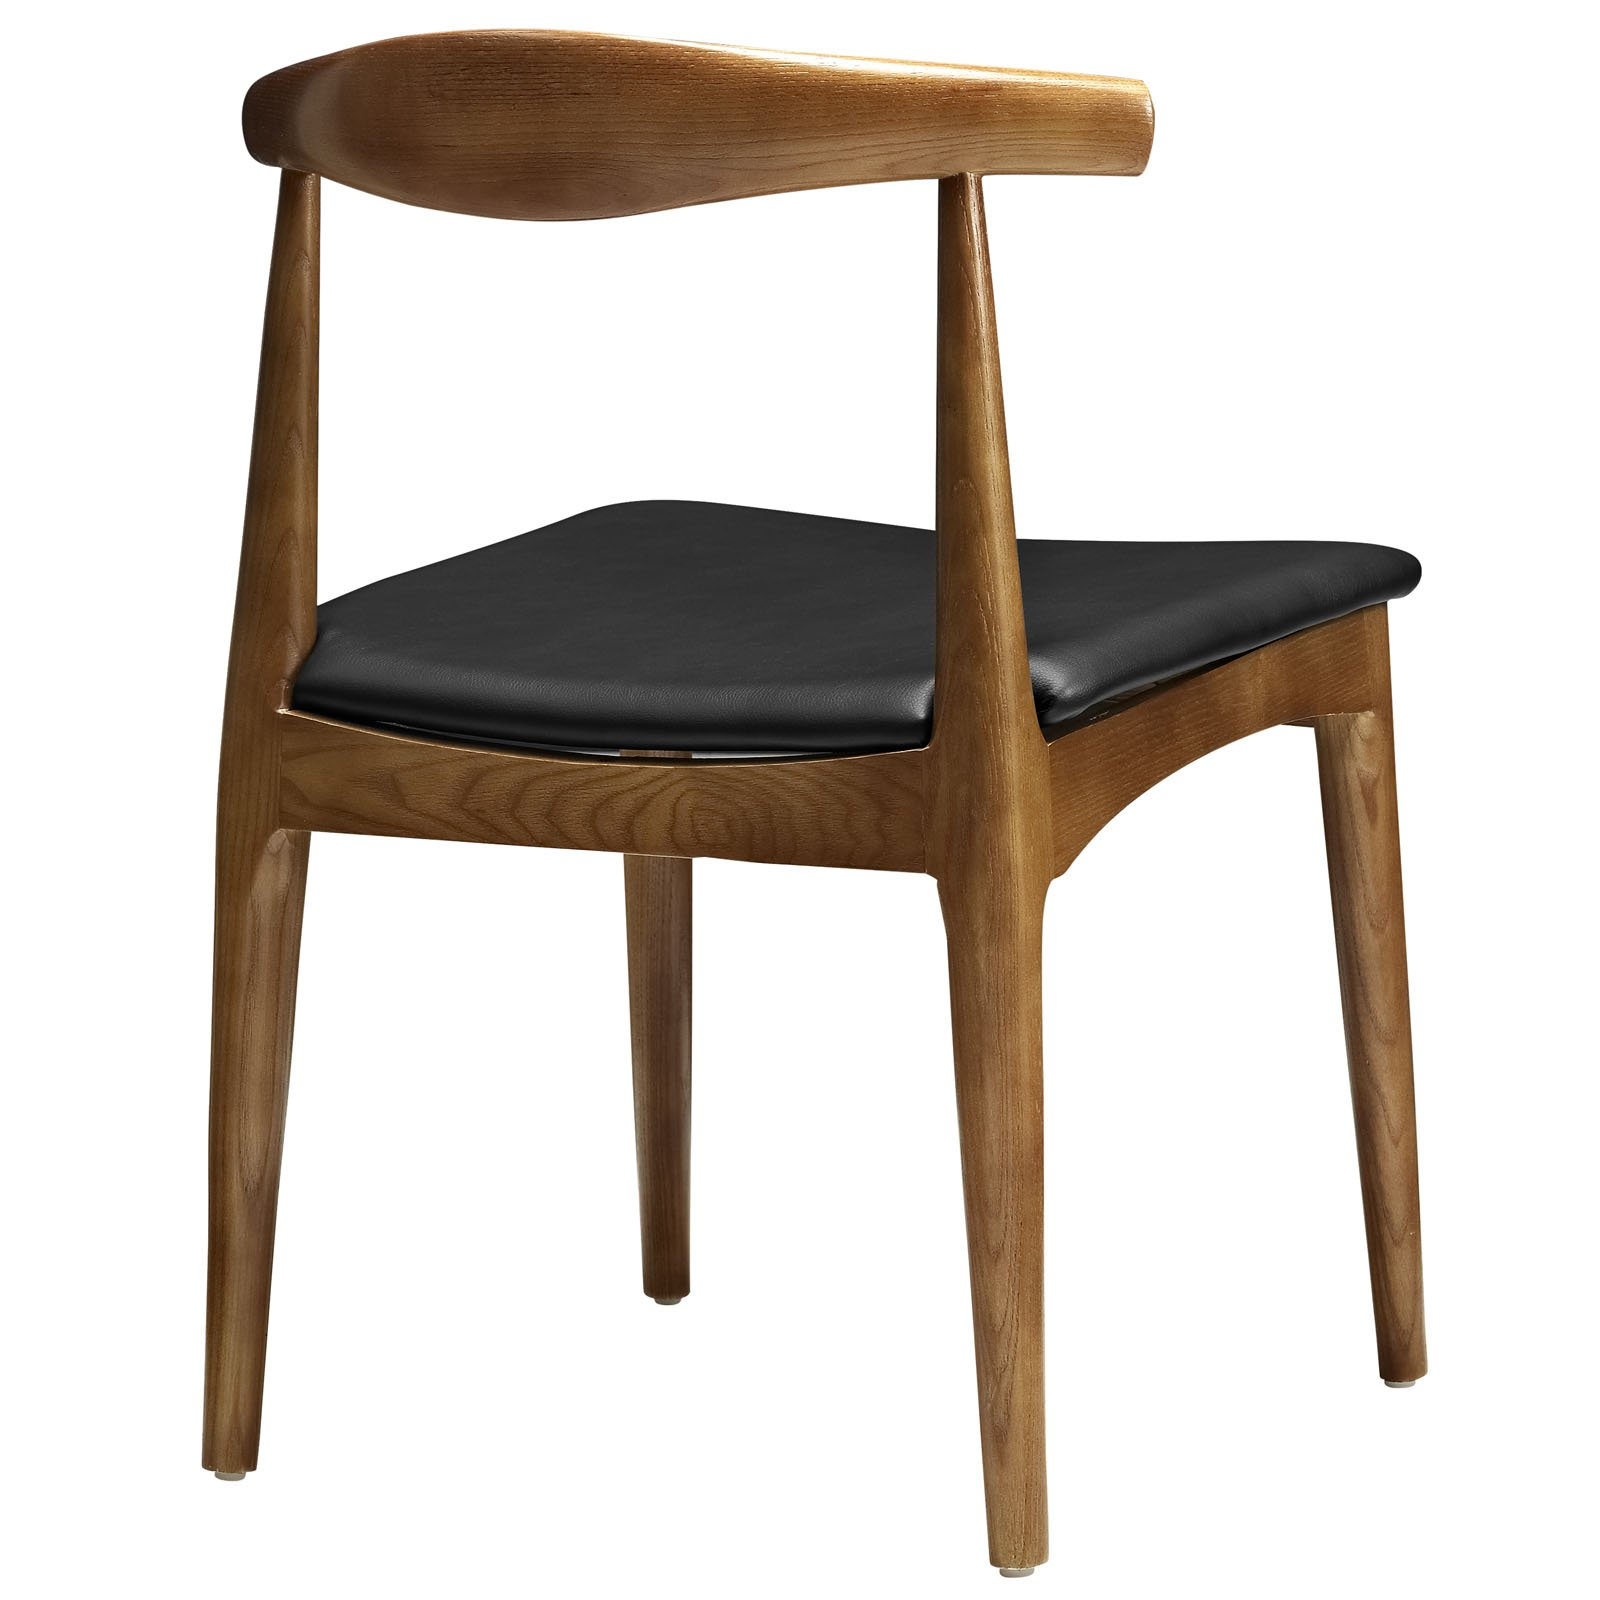 LexMod Hans Wegner Style Elbow Dining Side Chair with Faux Leather